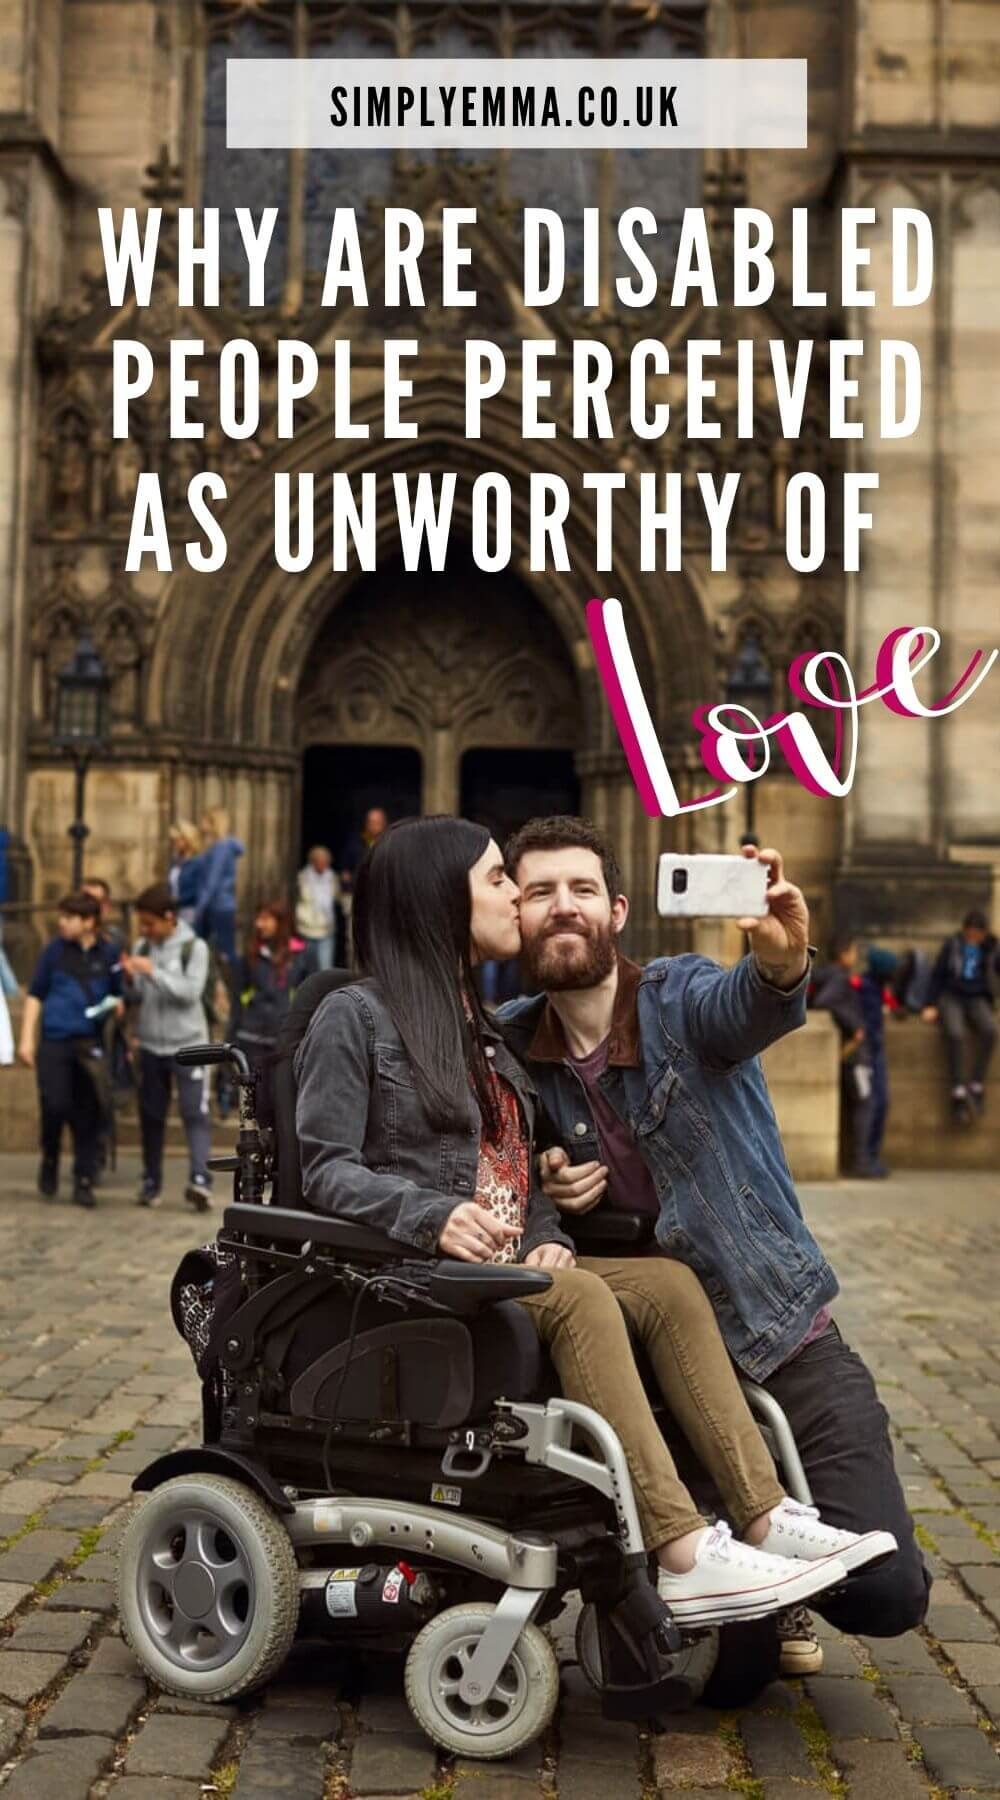 """Emma in her powered wheelchair with her boyfriend kneeling beside her holding a phone up while taking a selfie of them together. Emma is giving him a kiss on the cheek. They are outside a Cathedral in Edinburgh. Text over the image reads """" Why are disabled people perceived as unworthy of love. Simplyemma.co.uk"""""""